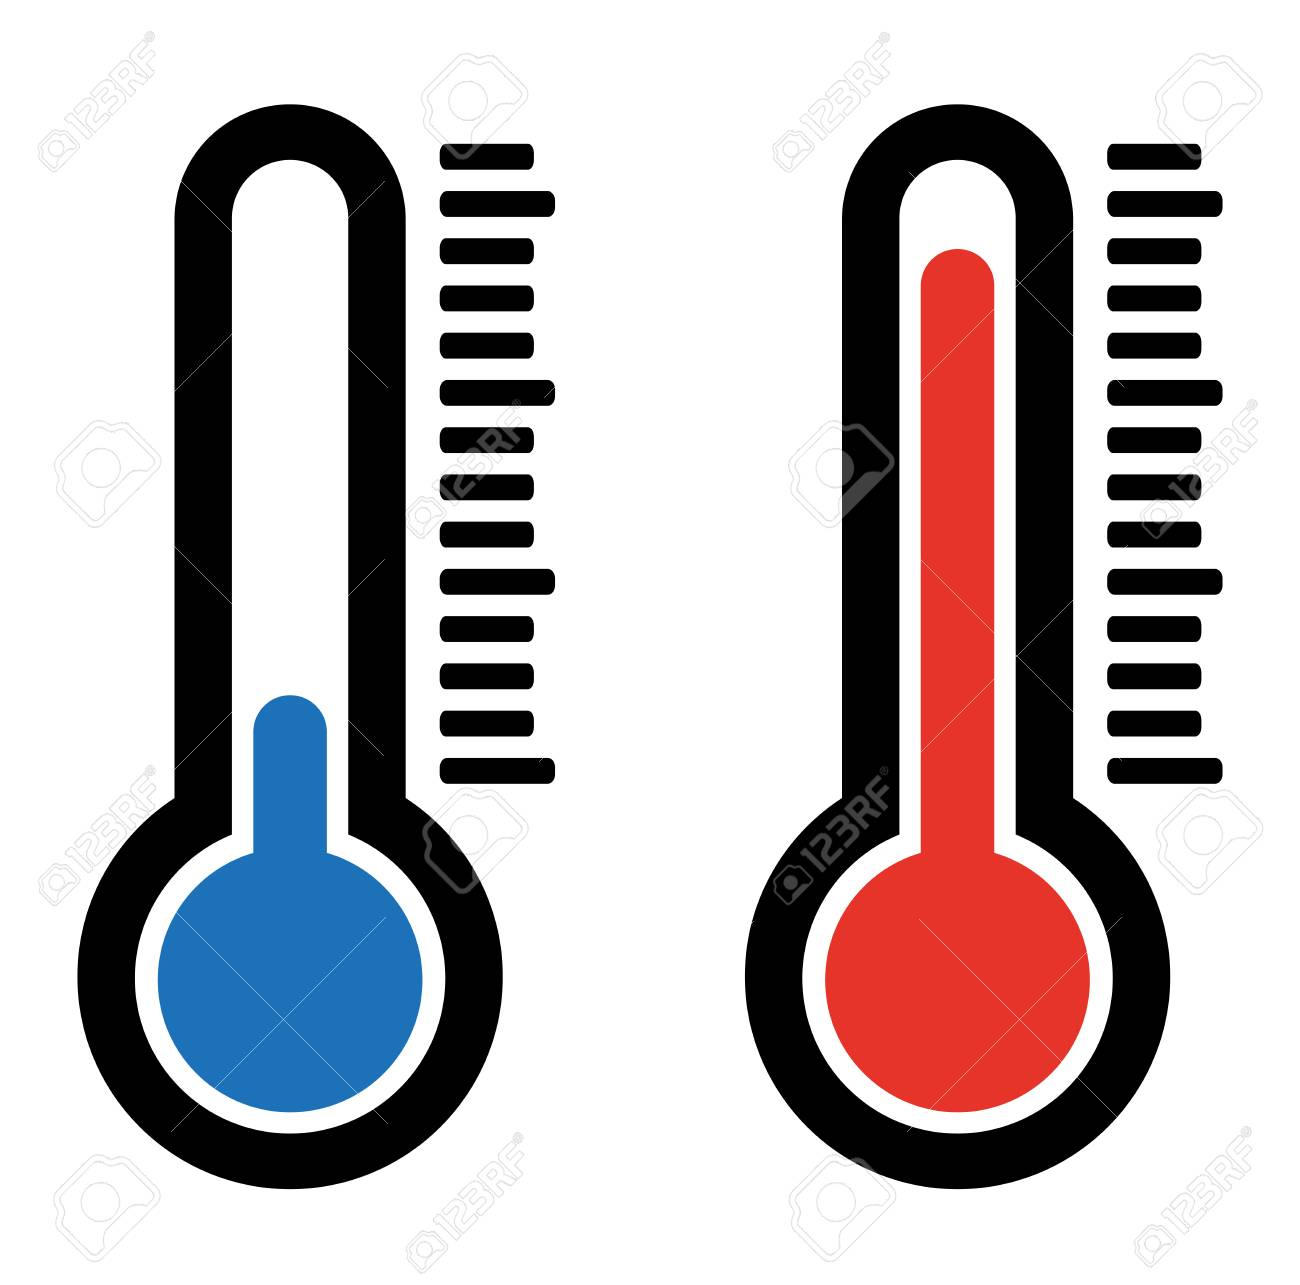 simple flat hot and cold temperature air thermometer icon - 120546877